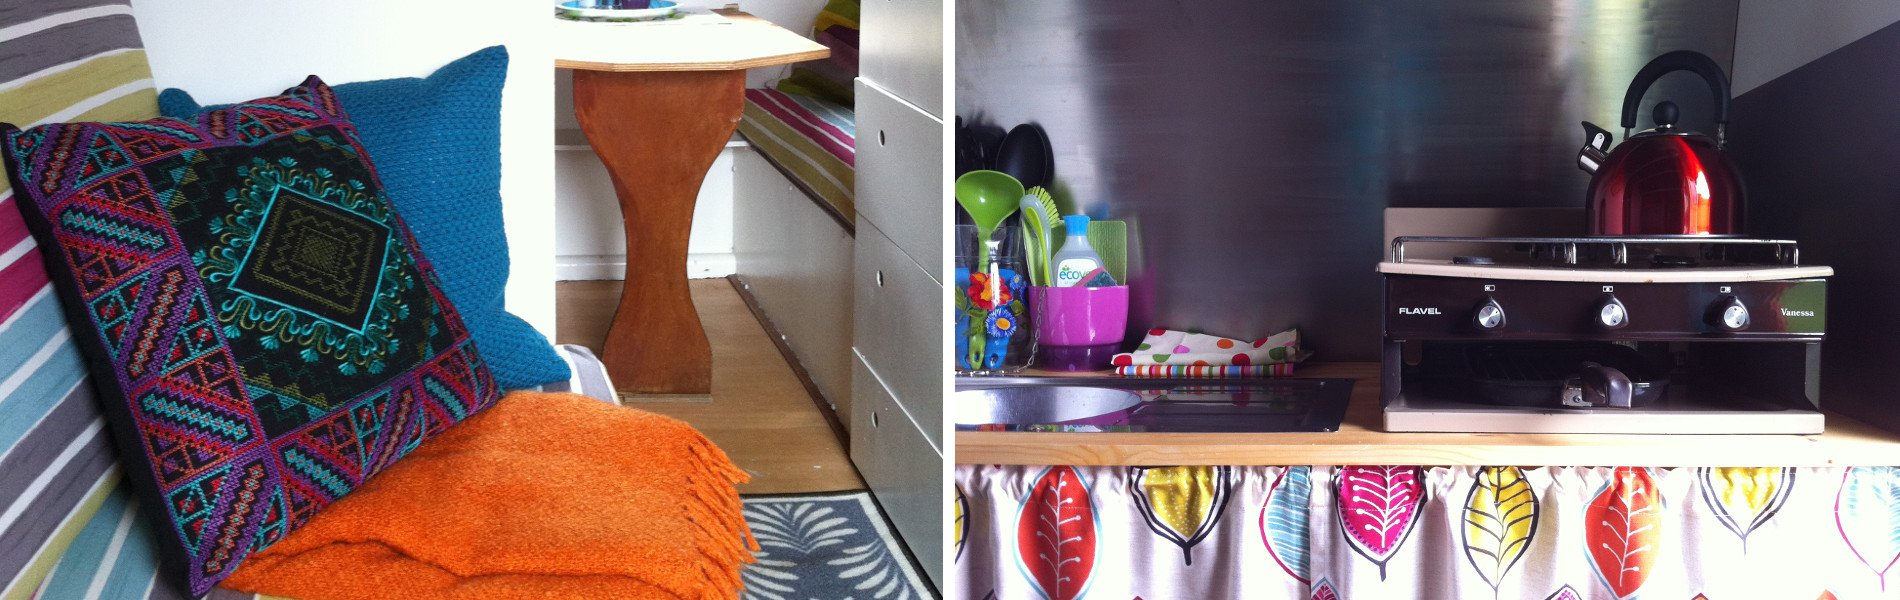 Glamping in a gypsy horse caravan, the interiors